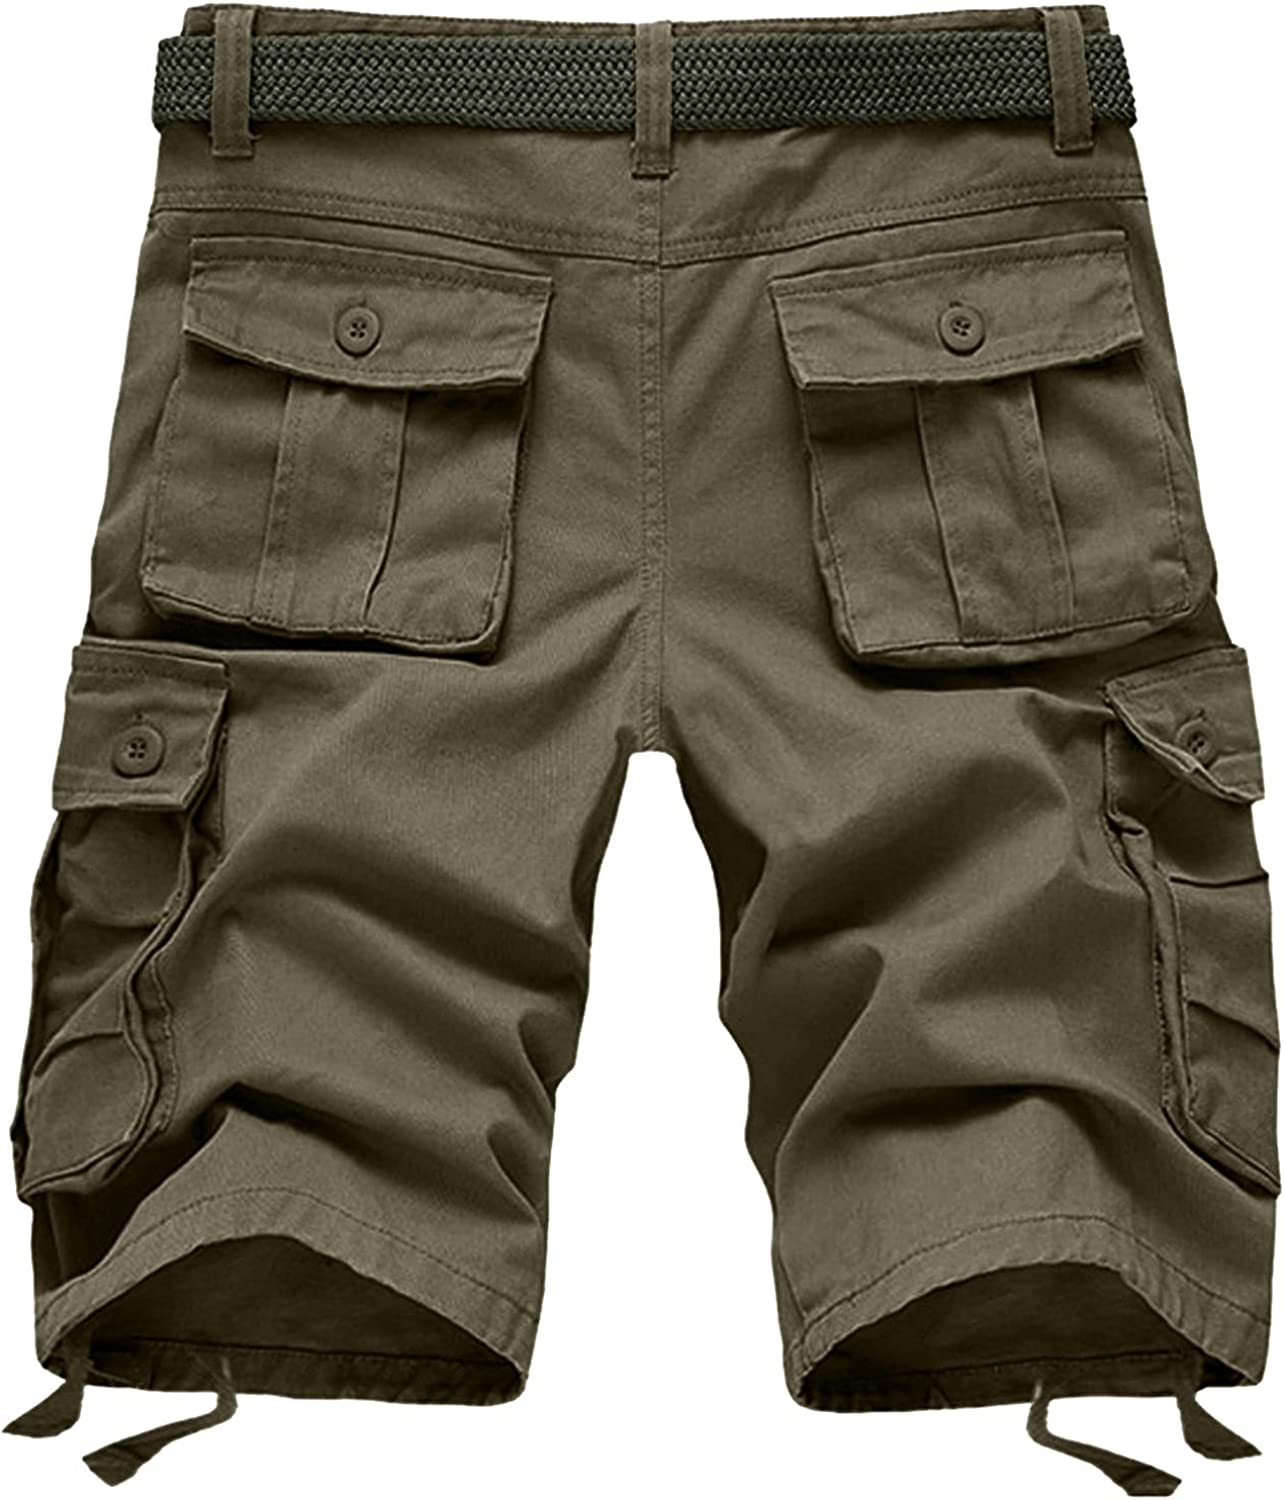 ZCAITIANYA Men's Casual Cargo Shorts Solid Hiking Relaxed Workout Outdoor Elastic Waist Stretch Summer with Multi Pockets